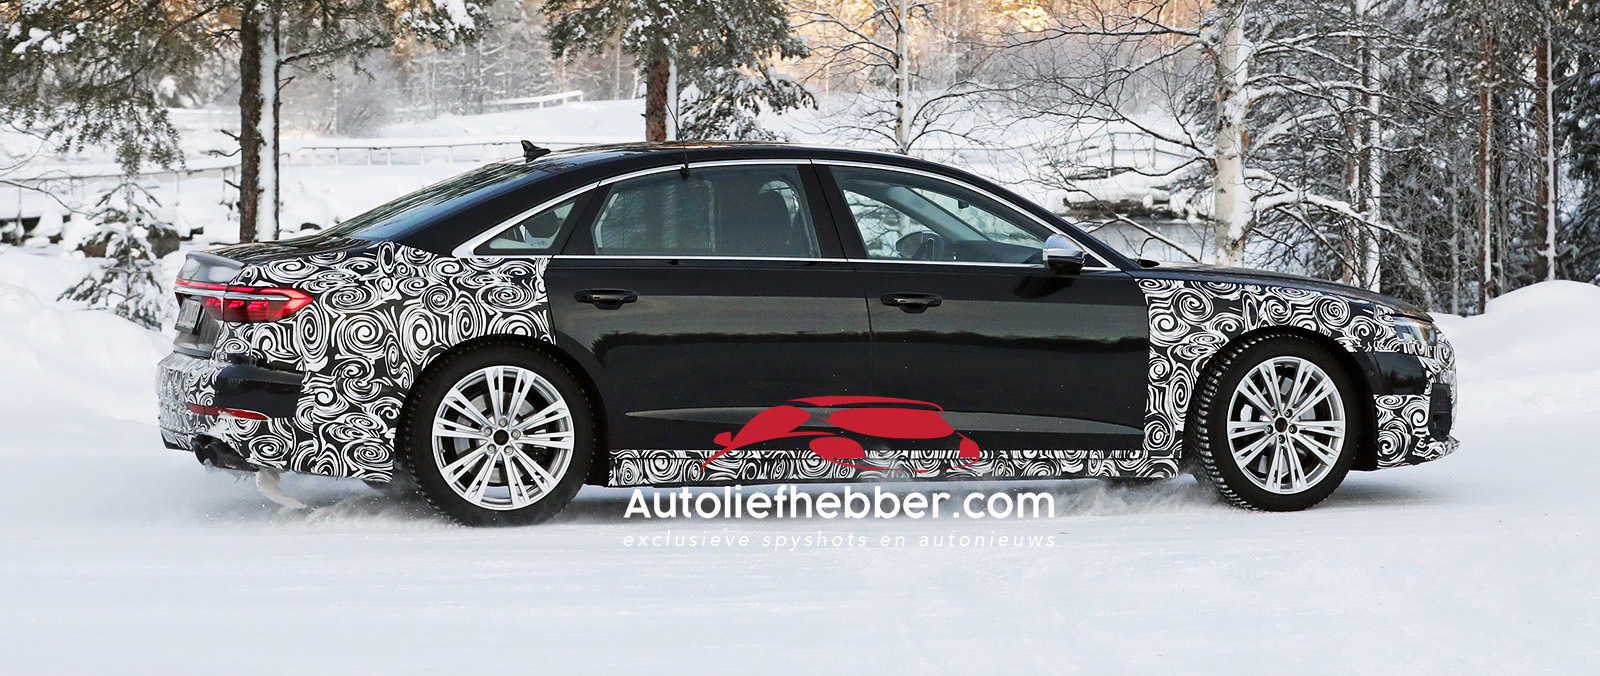 Audi S8 facelift in barre kou